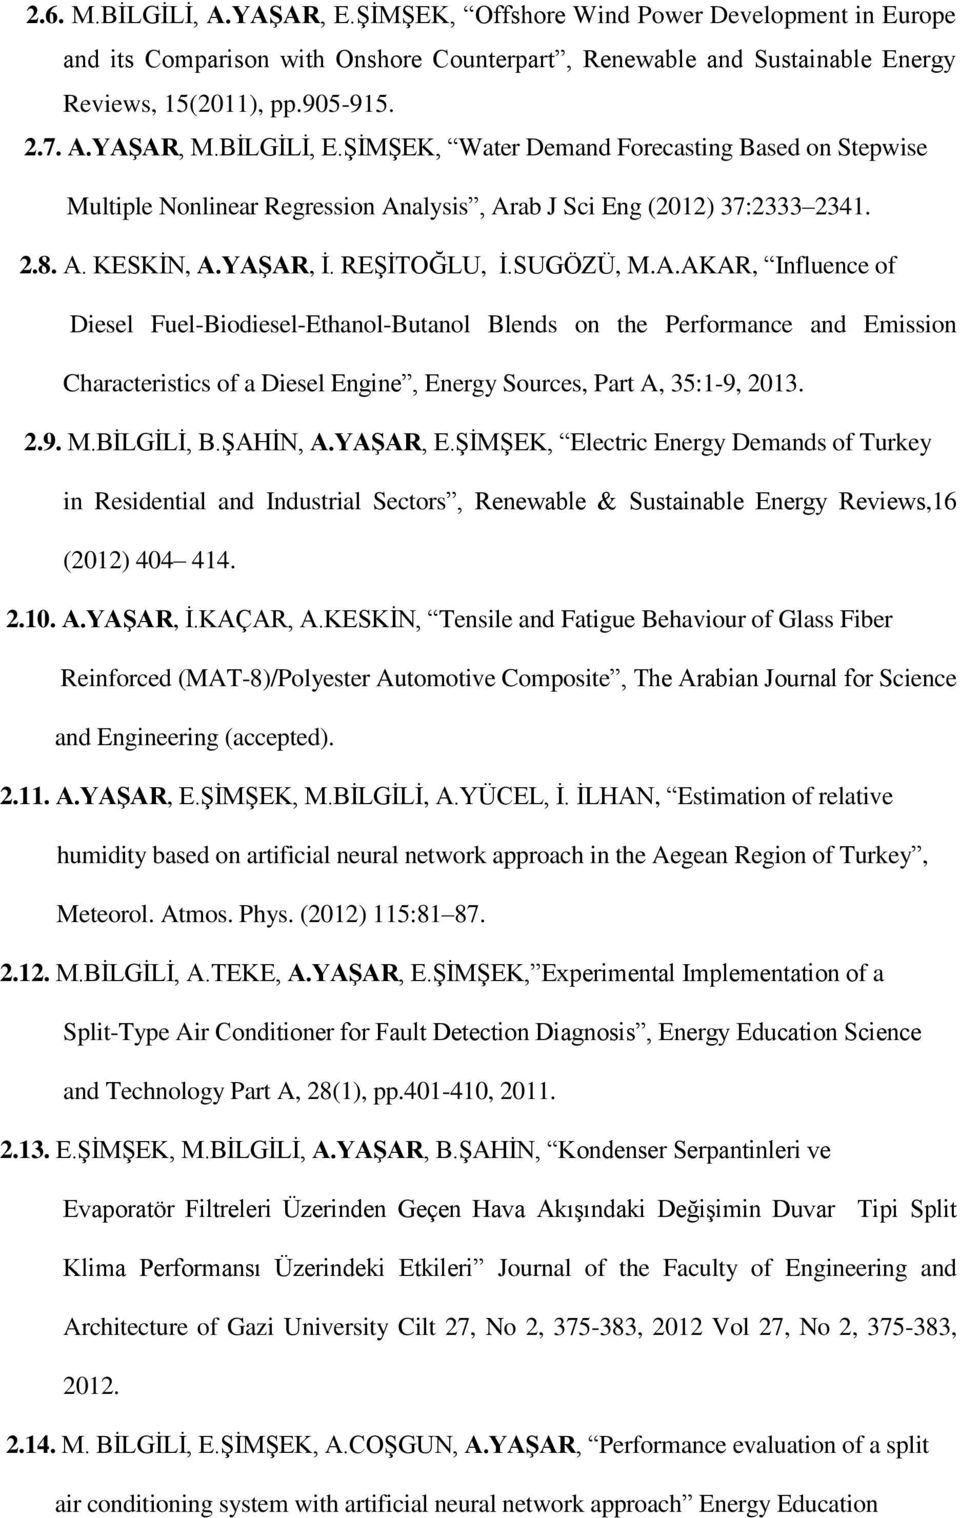 alysis, Arab J Sci Eng (2012) 37:2333 2341. 2.8. A. KESKİN, A.YAŞAR, İ. REŞİTOĞLU, İ.SUGÖZÜ, M.A.AKAR, Influence of Diesel Fuel-Biodiesel-Ethanol-Butanol Blends on the Performance and Emission Characteristics of a Diesel Engine, Energy Sources, Part A, 35:1-9, 2013.